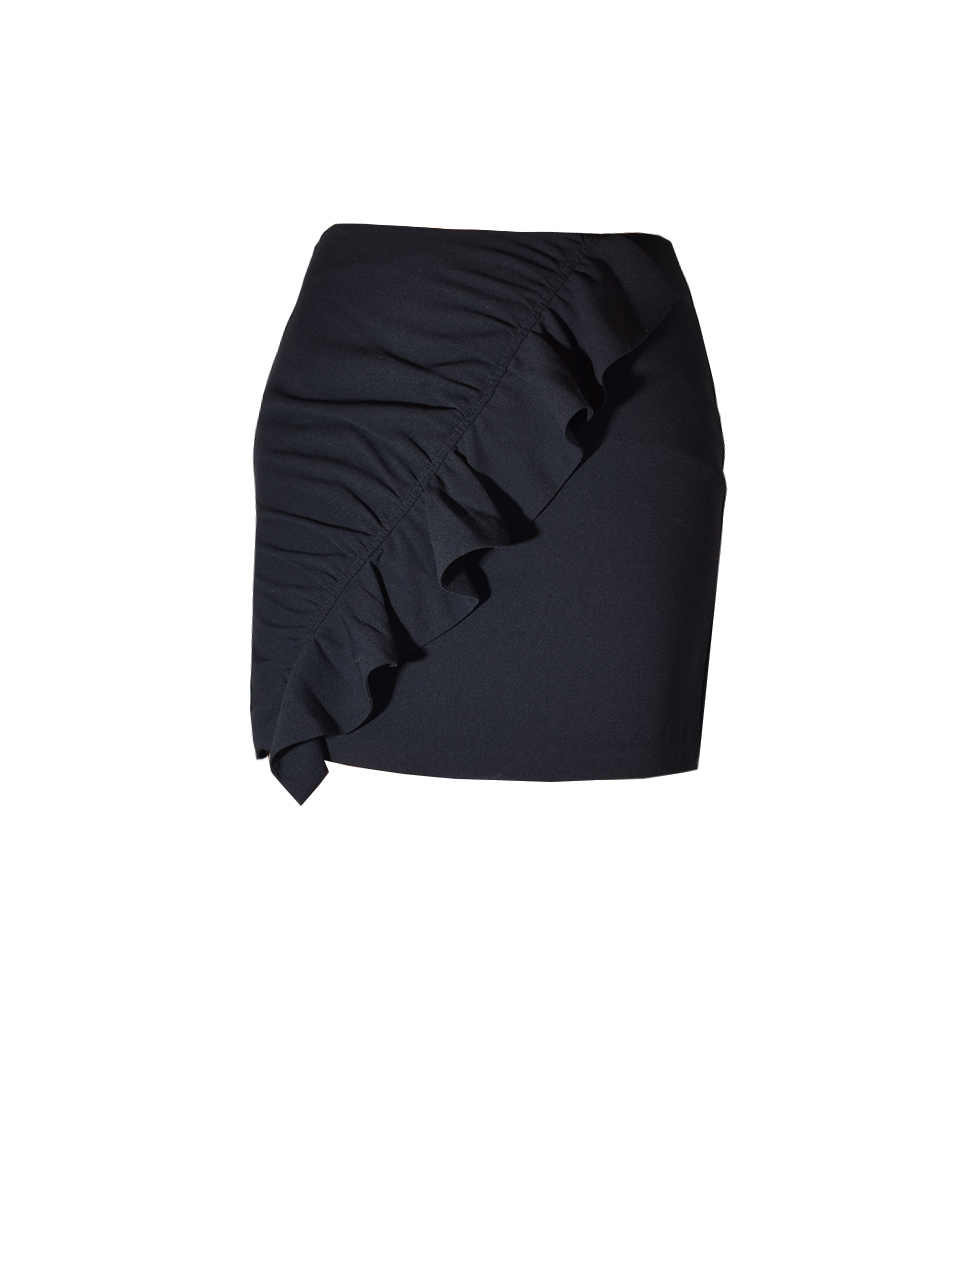 Karina Grimaldi  Danielle Mini Skirt In Black